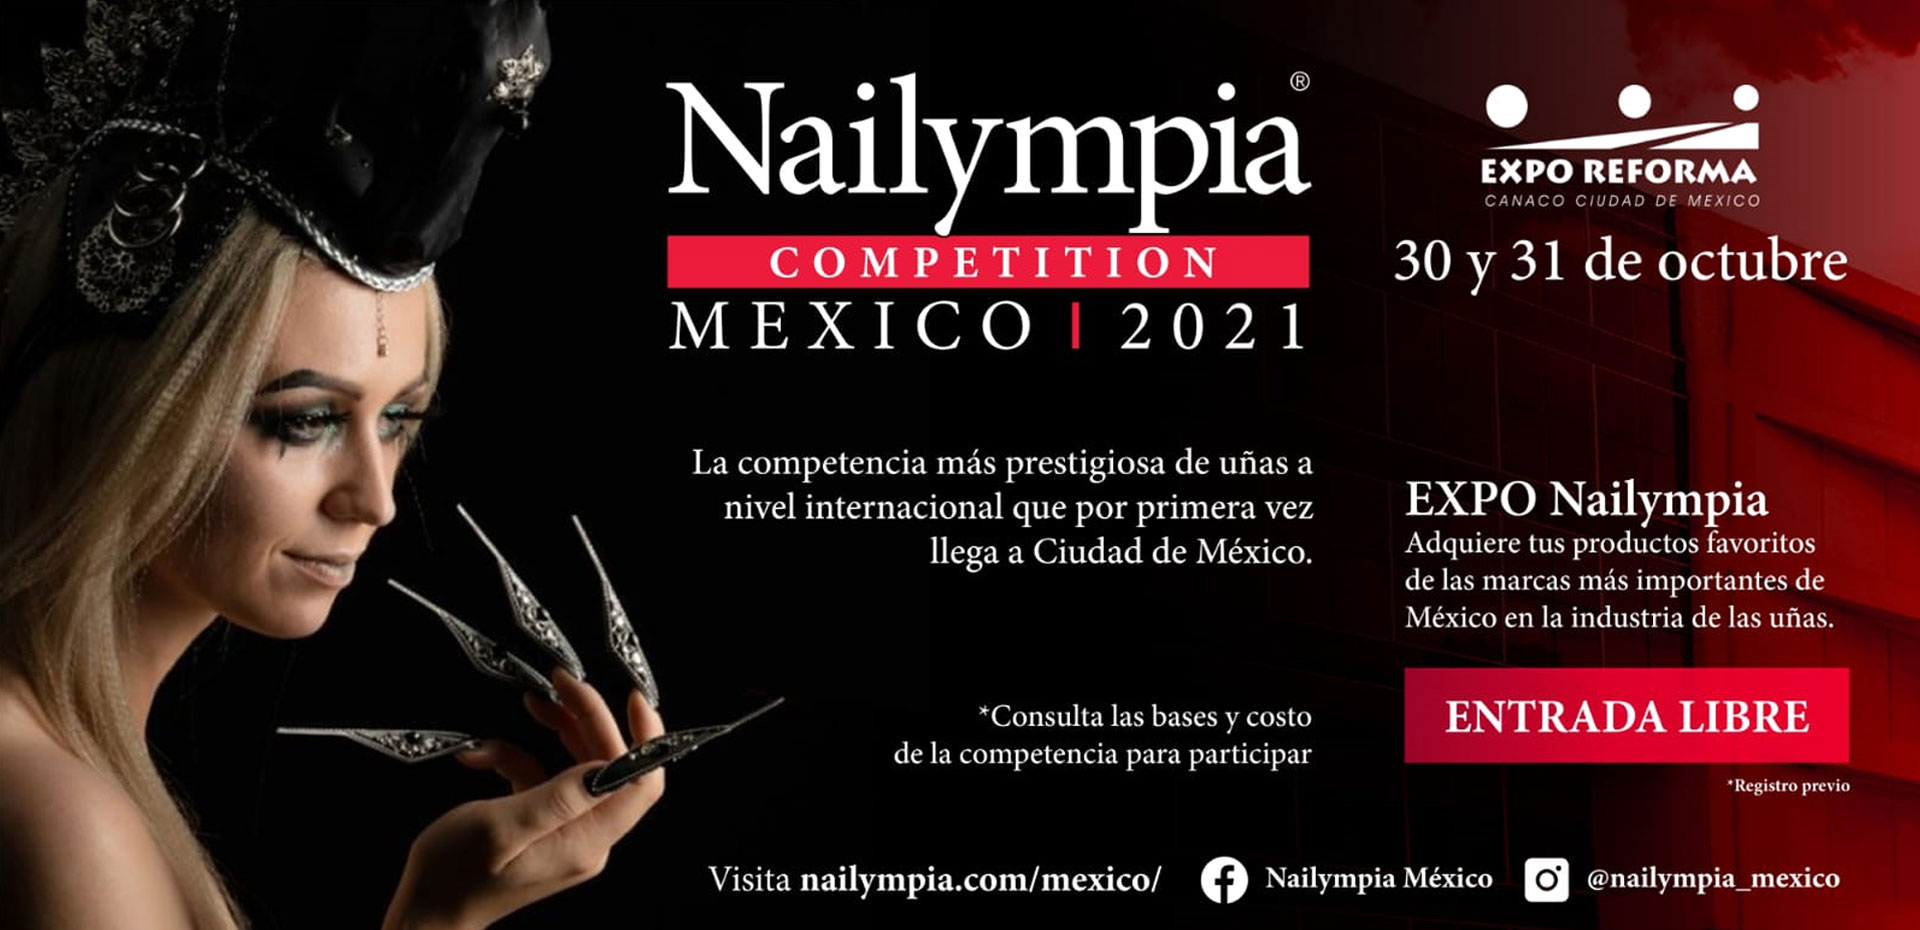 Nailympia Competition